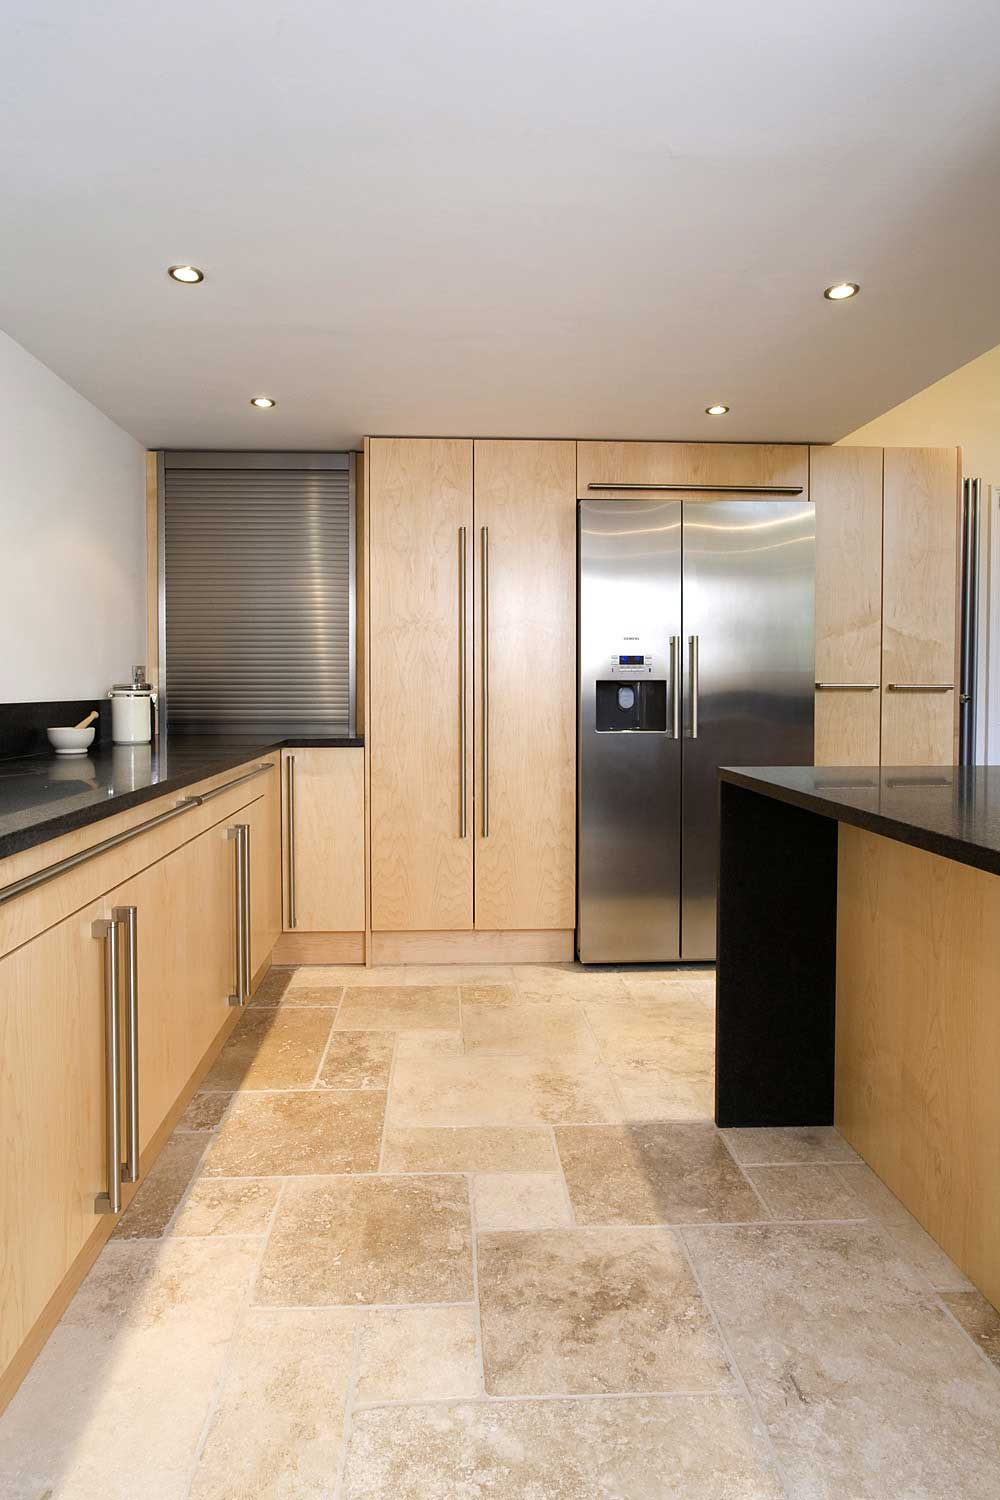 Contemporary bespoke city kitchen with beautiful stone flooring